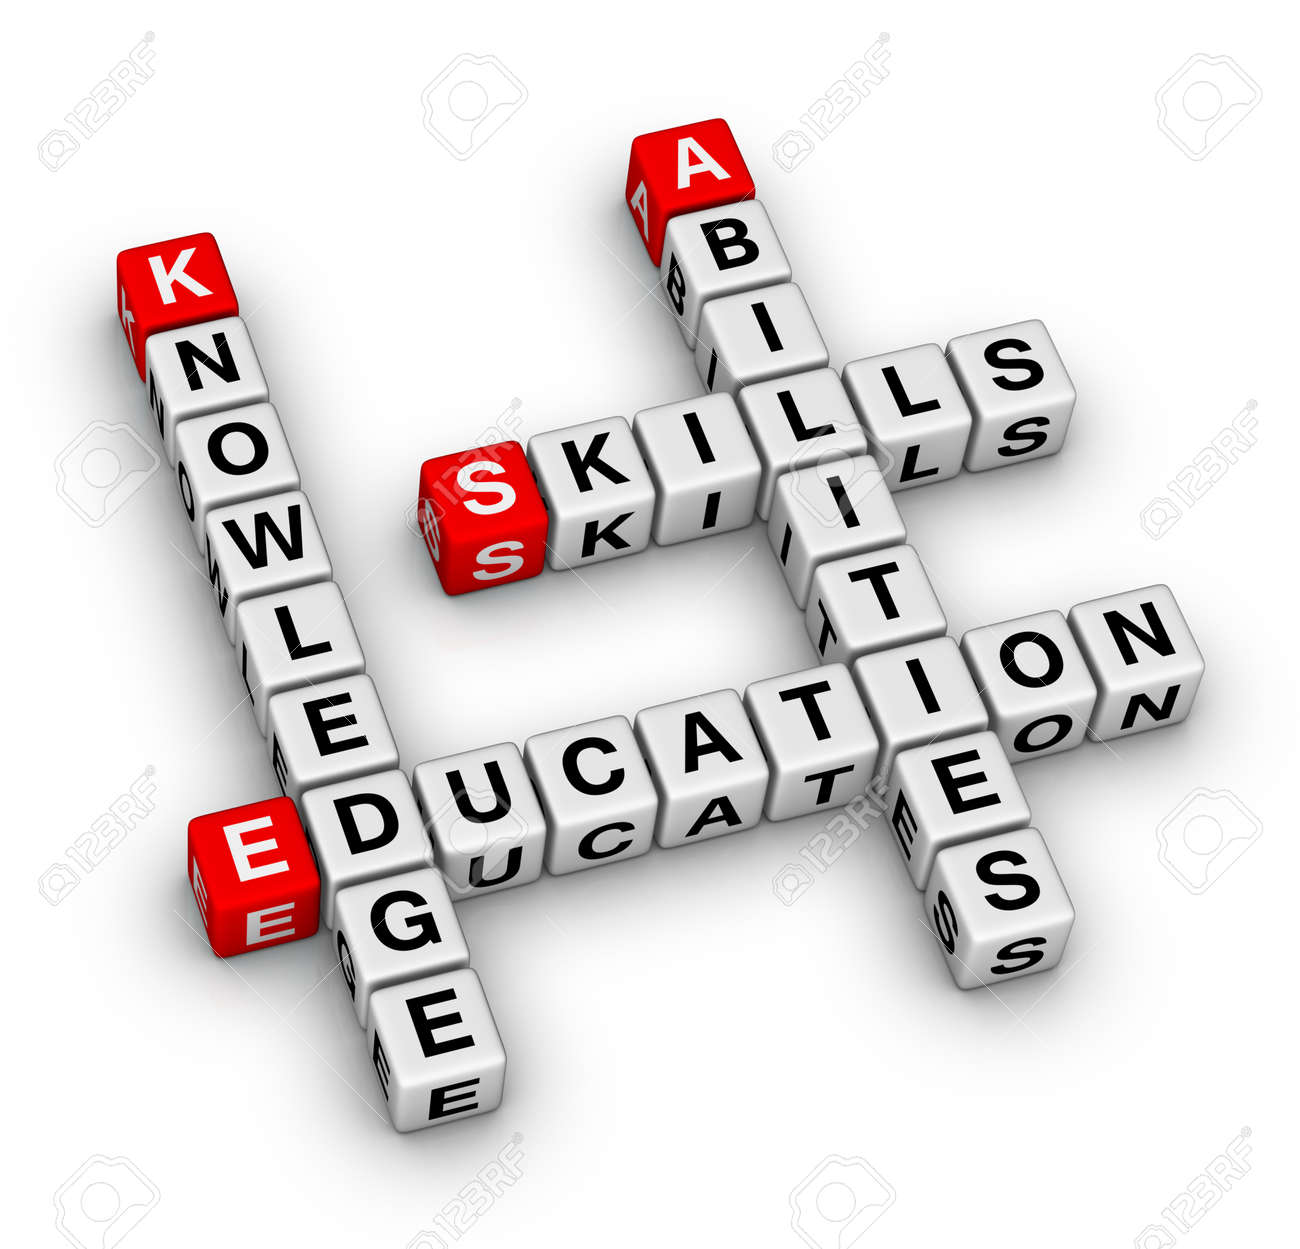 Skills, Knowledge, Abilities, Education Crossword Puzzle Stock ...